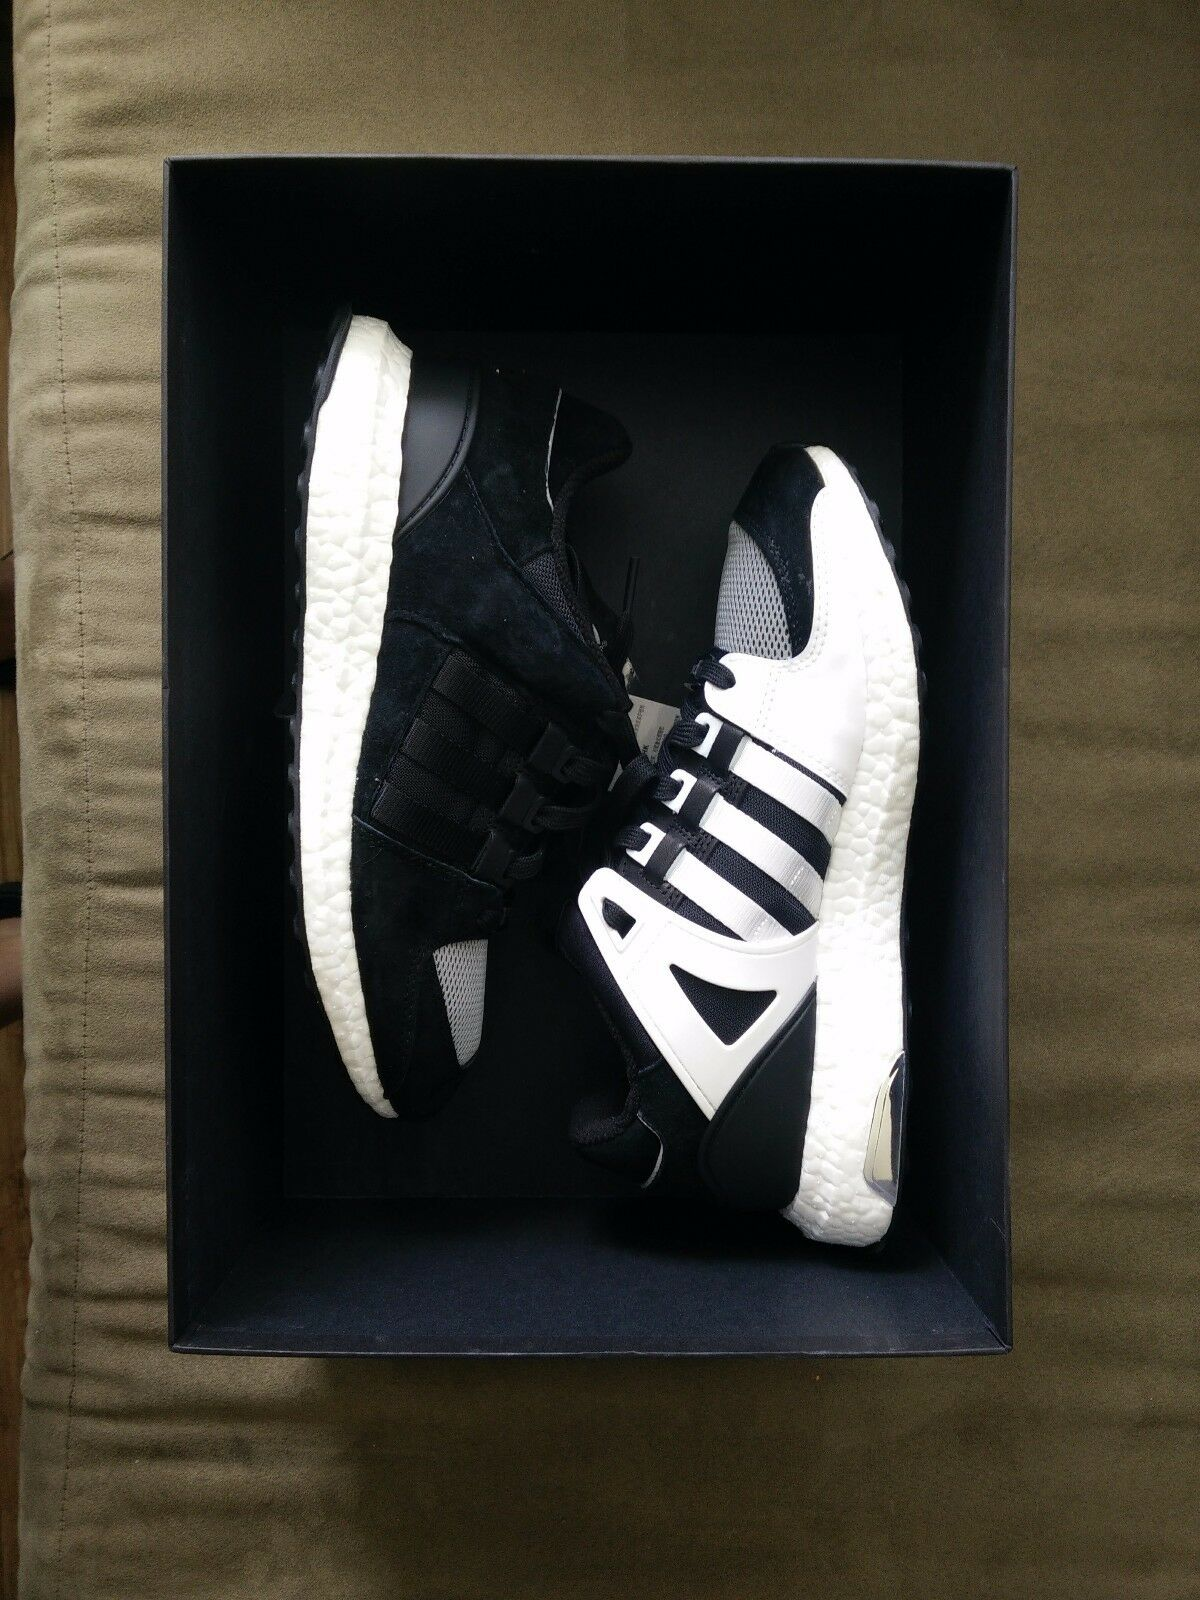 Adidas x Concepts EQT support Ultra Boost 93/16 Black White Size 8.5 US NEW